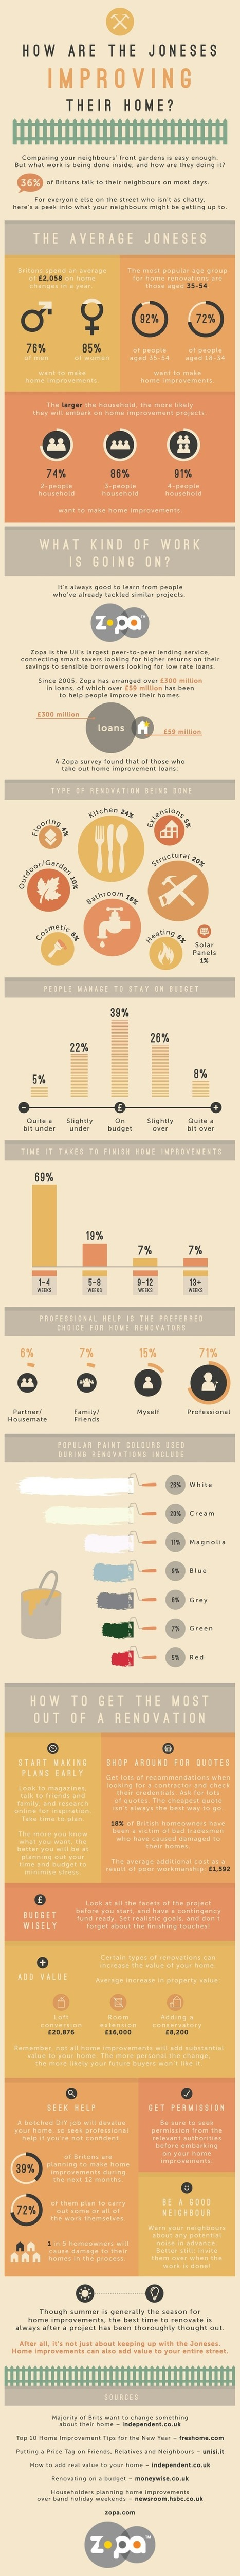 How Are The Joneses Improving Their Home? [Infographic] - Business 2 Community | infographics | Scoop.it